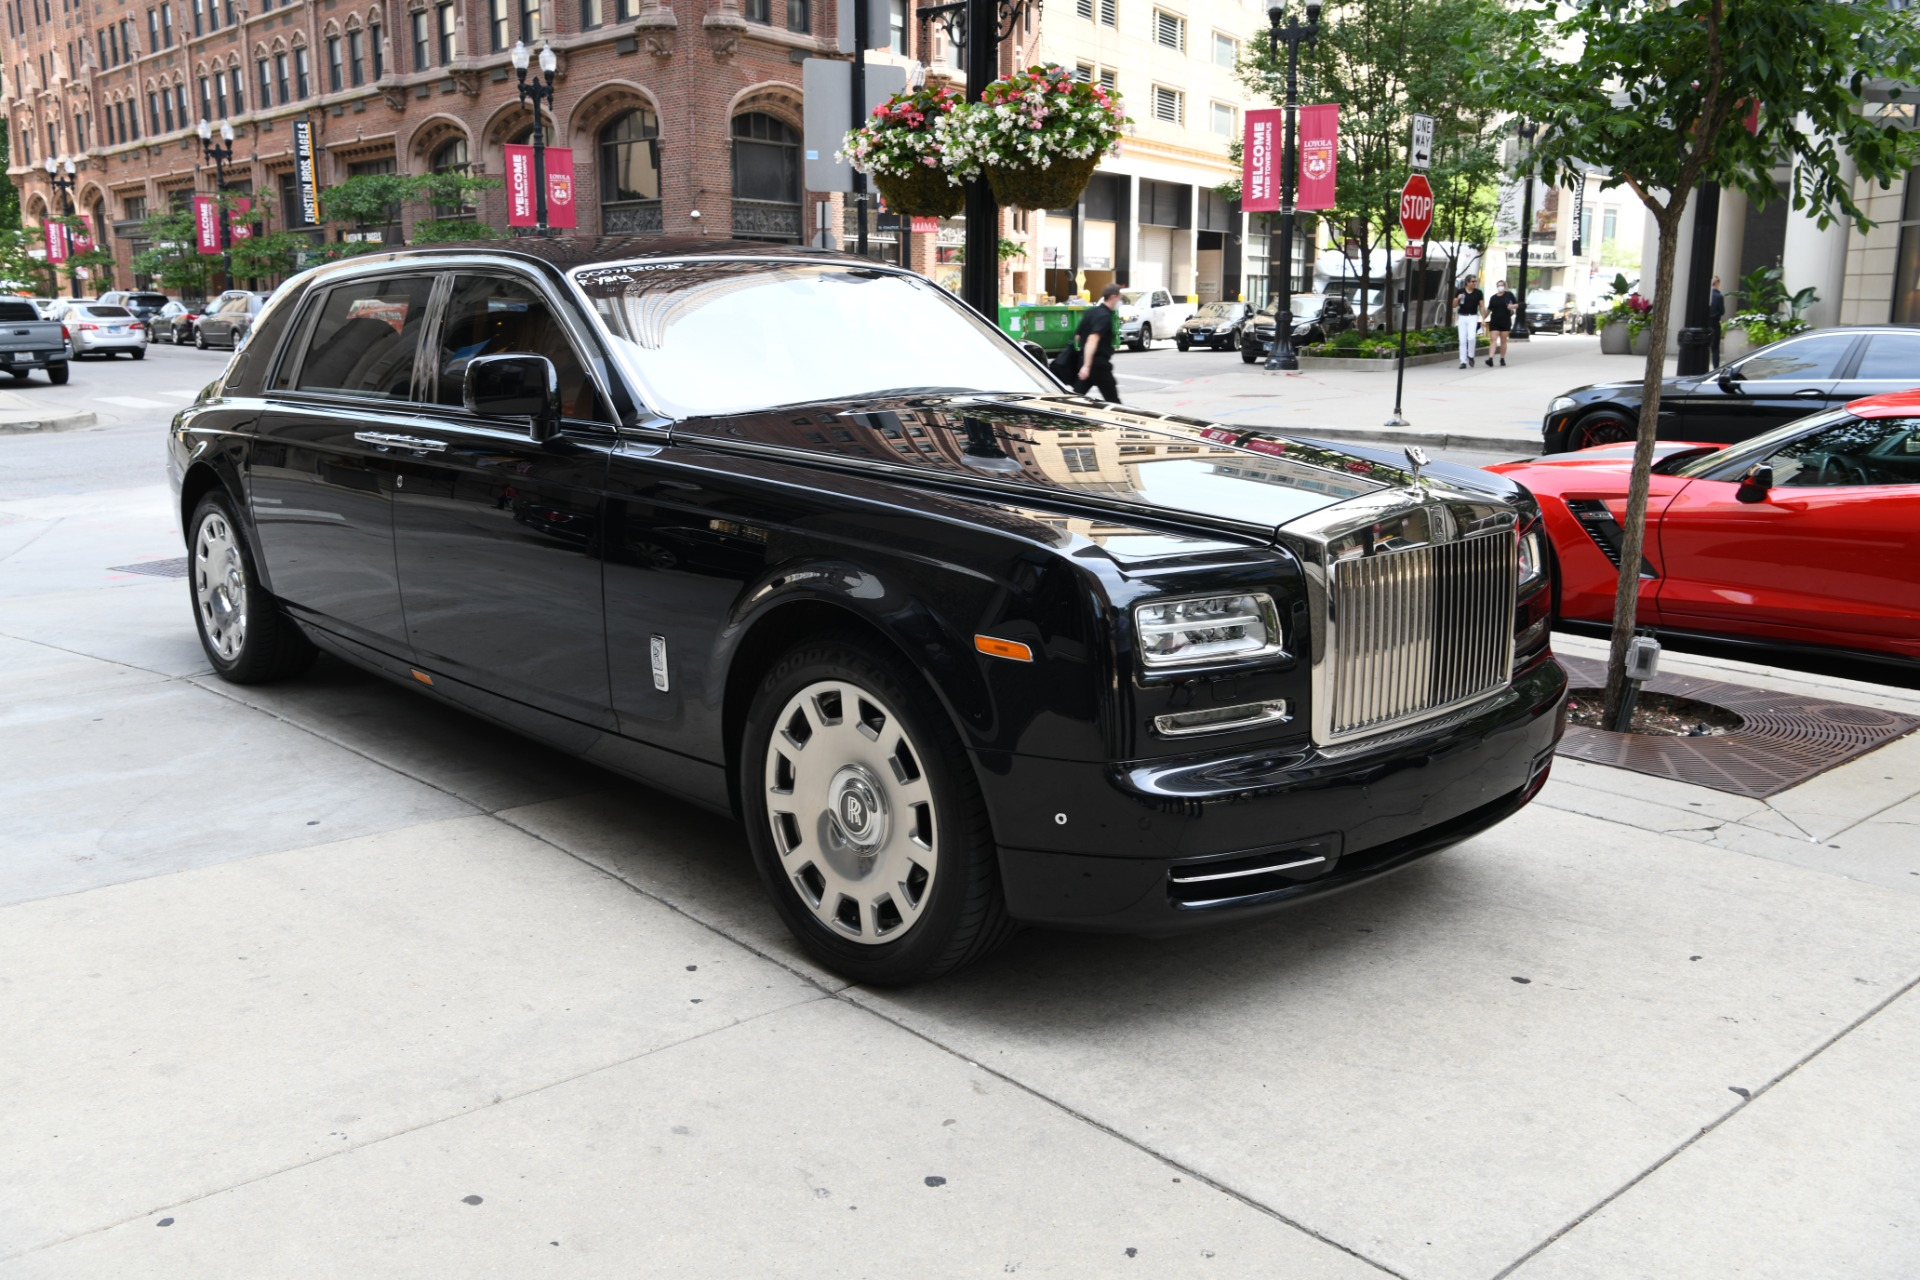 2017 rolls royce phantom extended wheelbase ewb stock r369 for sale near chicago il il. Black Bedroom Furniture Sets. Home Design Ideas